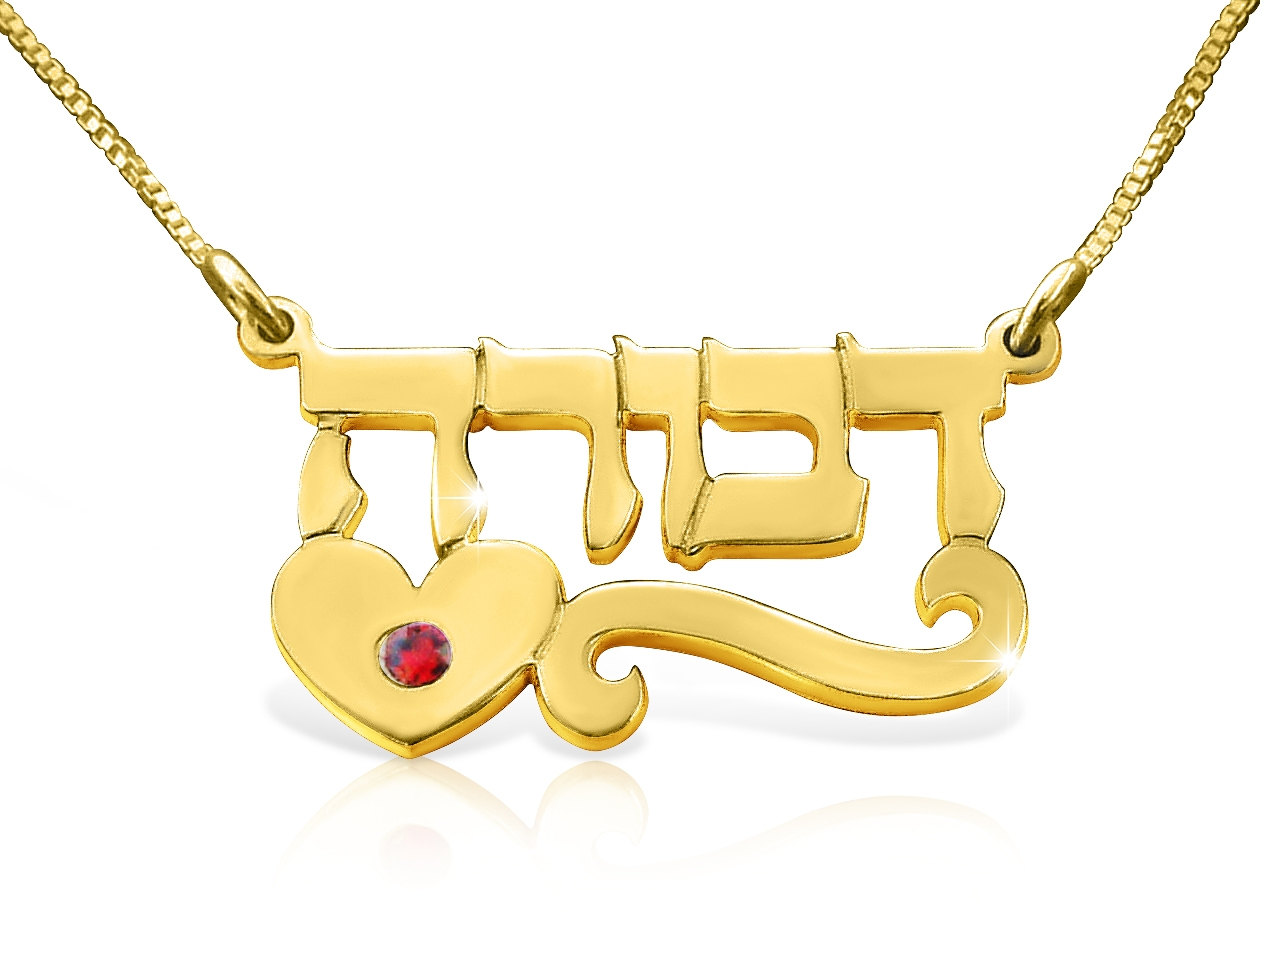 Hebrew Name Necklace Israel Bat Mitzvah Gift Personalized Heart design 18k Gold Plated Chain ANY NAME custom Birthstone crystal Kabbalah